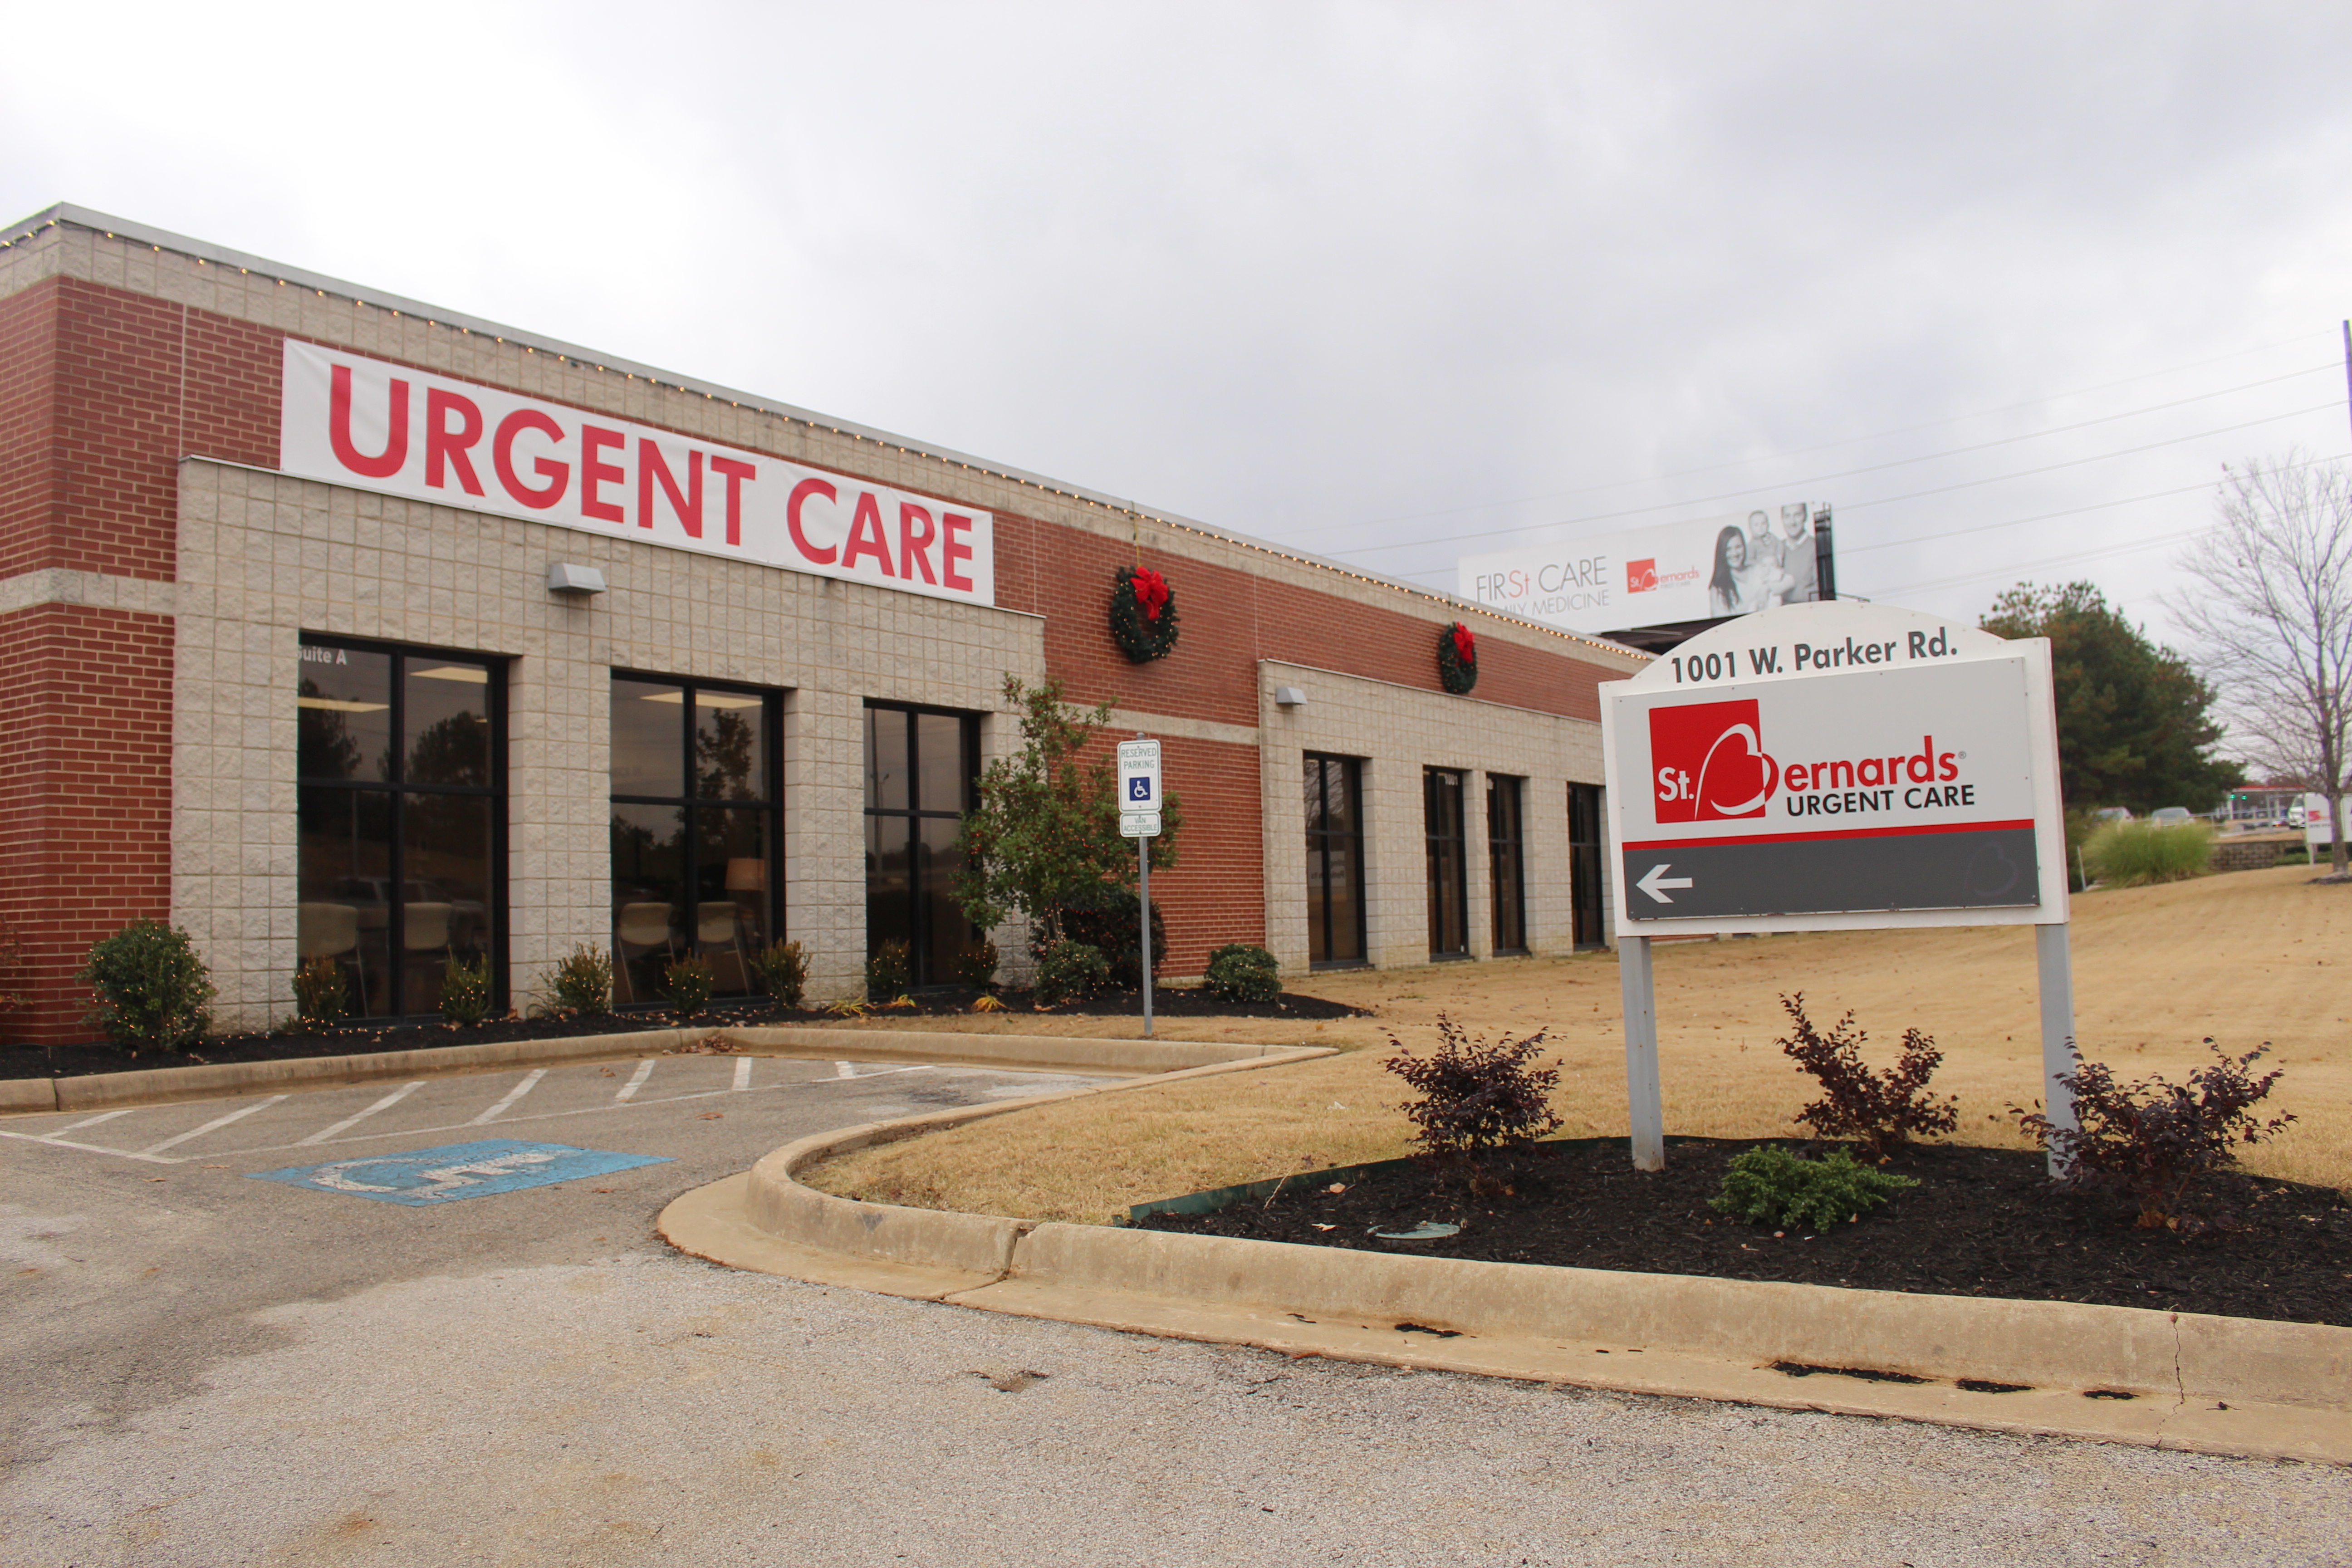 Urgent Care St. Bernards